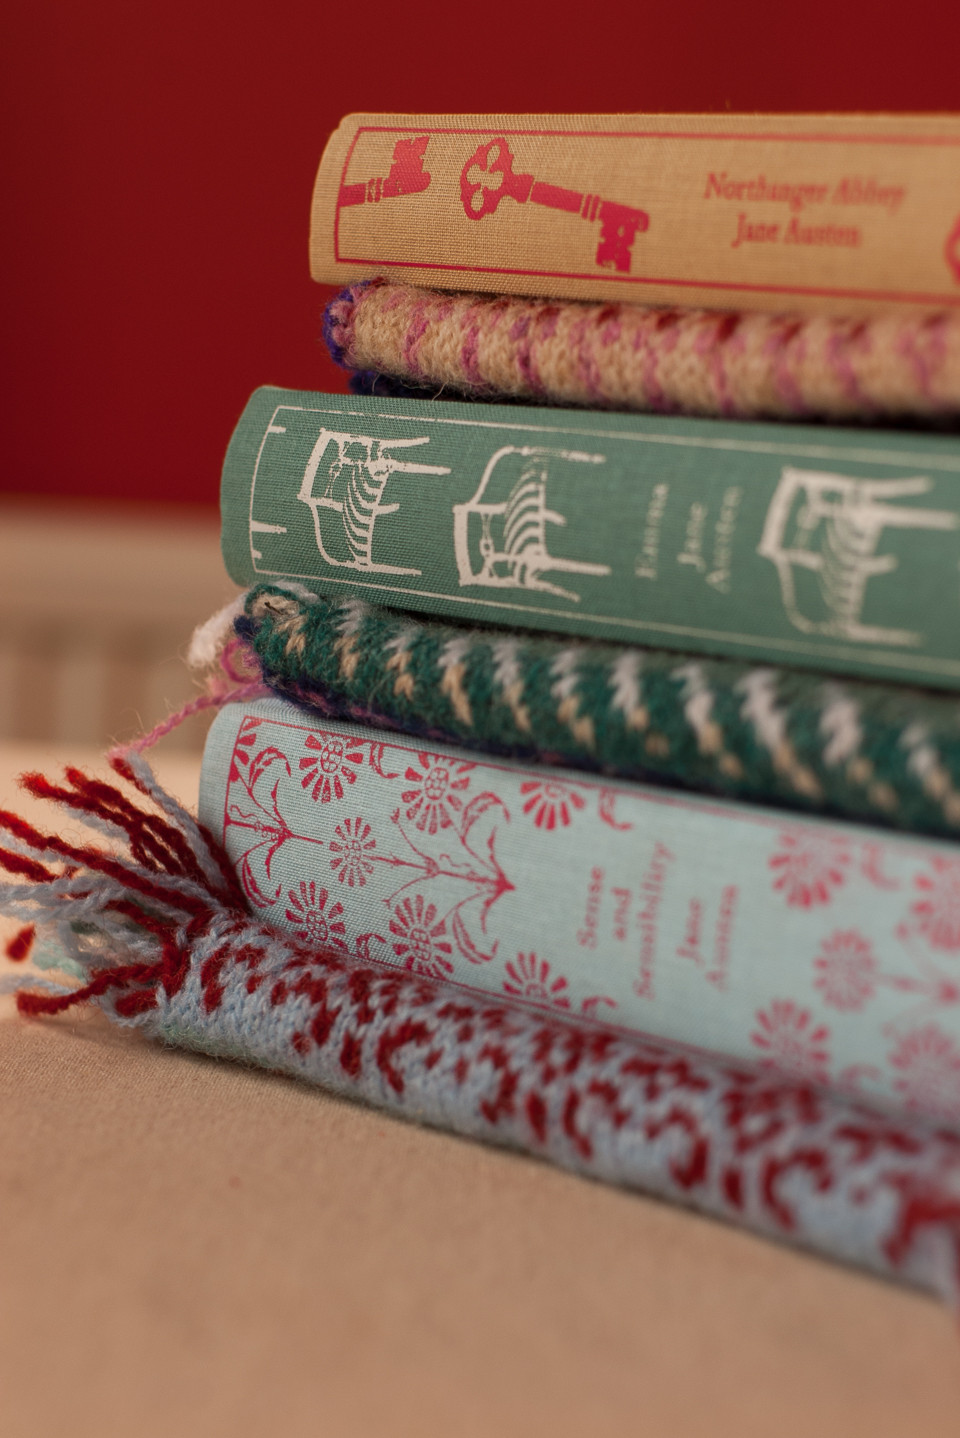 The three editions of Jane Austen's novels that inspired Judith's wondrous vest